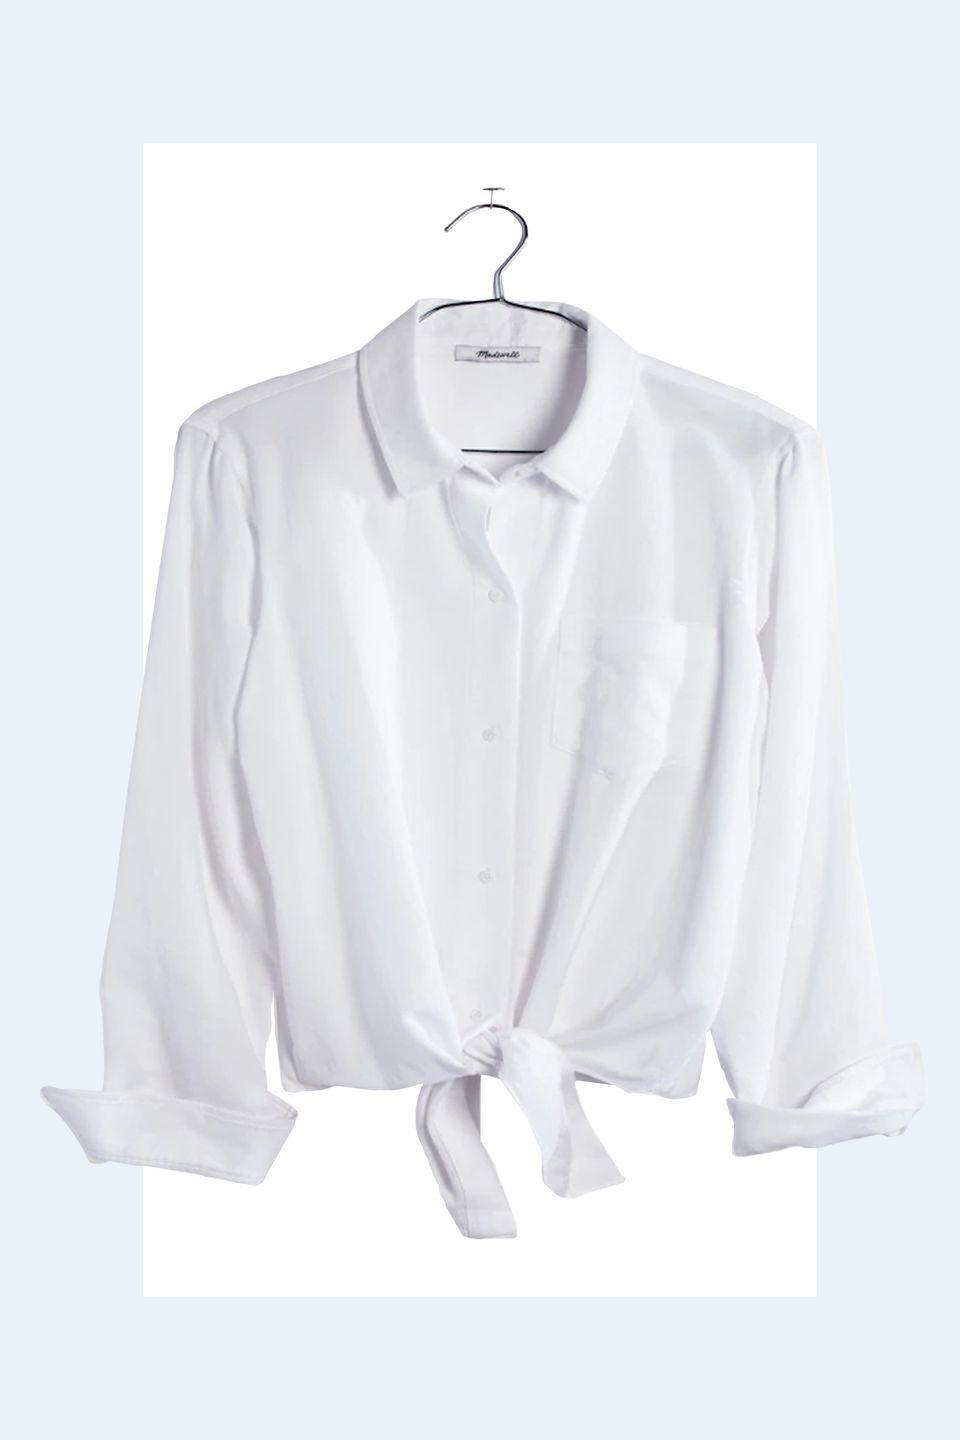 """<p><a rel=""""nofollow noopener"""" href=""""https://www.madewell.com/white-tie-front-shirt-F3219.html"""" target=""""_blank"""" data-ylk=""""slk:SHOP NOW"""" class=""""link rapid-noclick-resp"""">SHOP NOW</a> <em>Madewell Tie Front Shirt, $79.50</em></p><p>""""A crisp white button down is the perfect piece every woman should have. It looks polished but can be worn running errands, and it can go from day to night. It's a hero piece."""" -<em><a rel=""""nofollow noopener"""" href=""""http://theonly.agency/negar-ali-kline"""" target=""""_blank"""" data-ylk=""""slk:Negar Ali Kline"""" class=""""link rapid-noclick-resp"""">Negar Ali Kline</a></em><br></p>"""